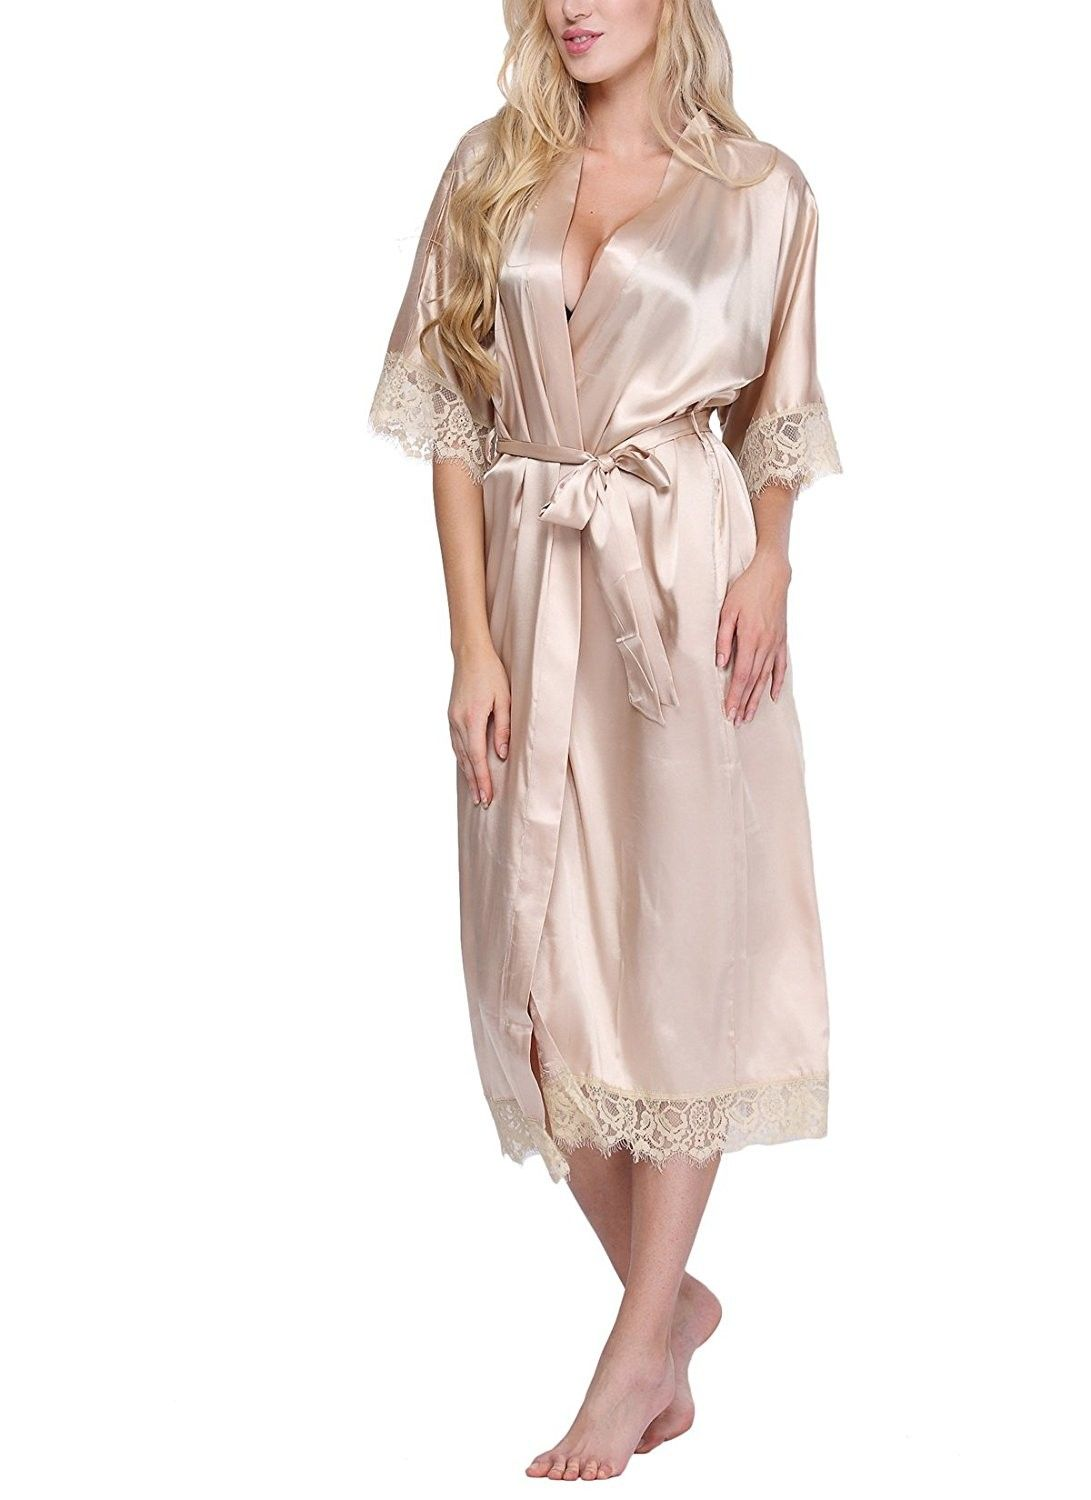 8465fdfcc5b8 Women s Solid-Colored Long Kimono Robe Loungewear With Lace Trim -  Champagne - CL12FYZQHYZ